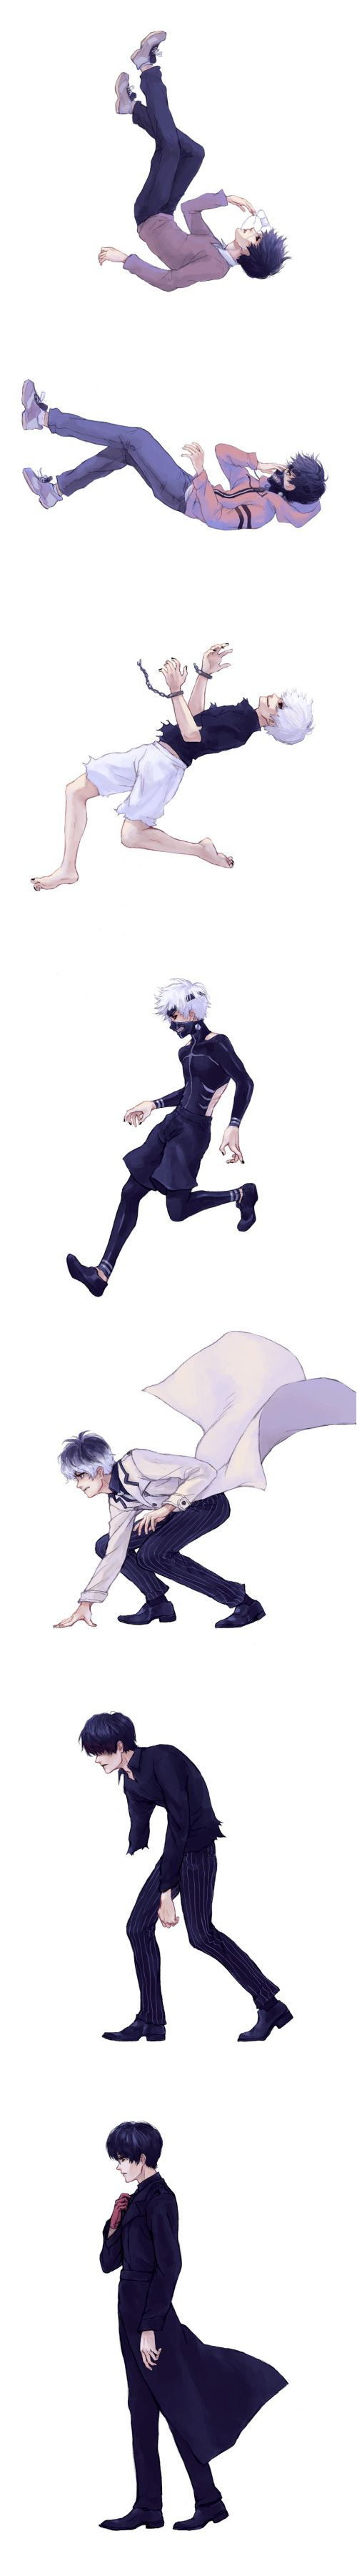 """I am who I need to be"" by iiclipse.tumblr.com/ 